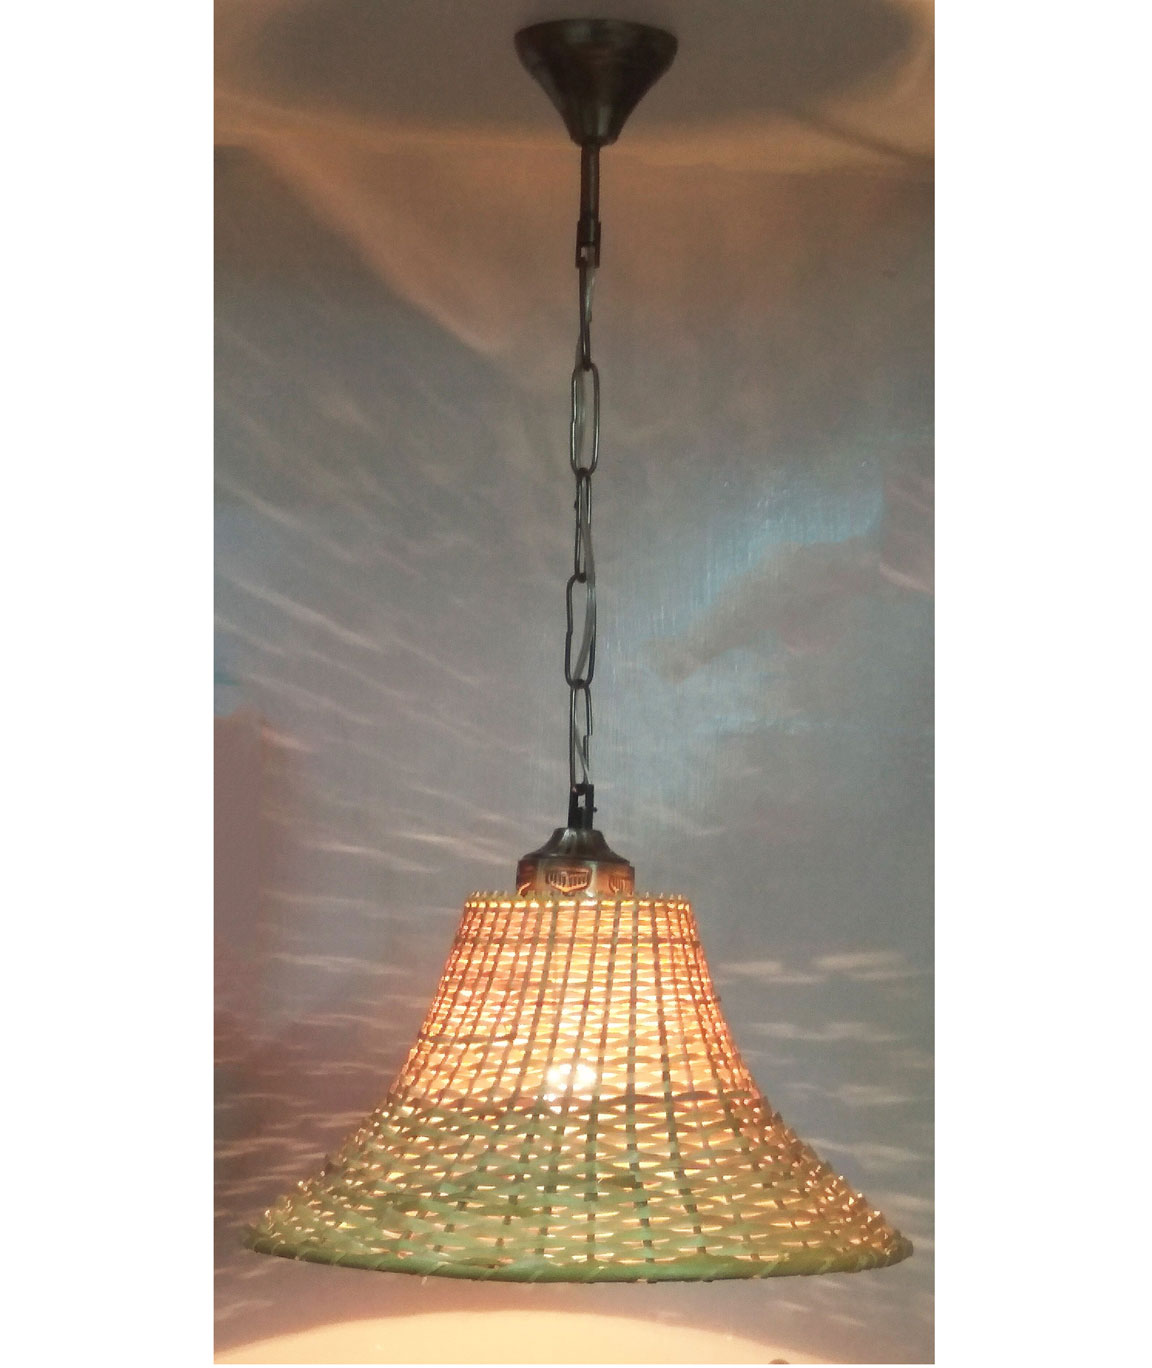 RDC 12 Inches Round Cane Slanting Ceiling Hanging Pendant Lamp Shade with Wired Metal Chain